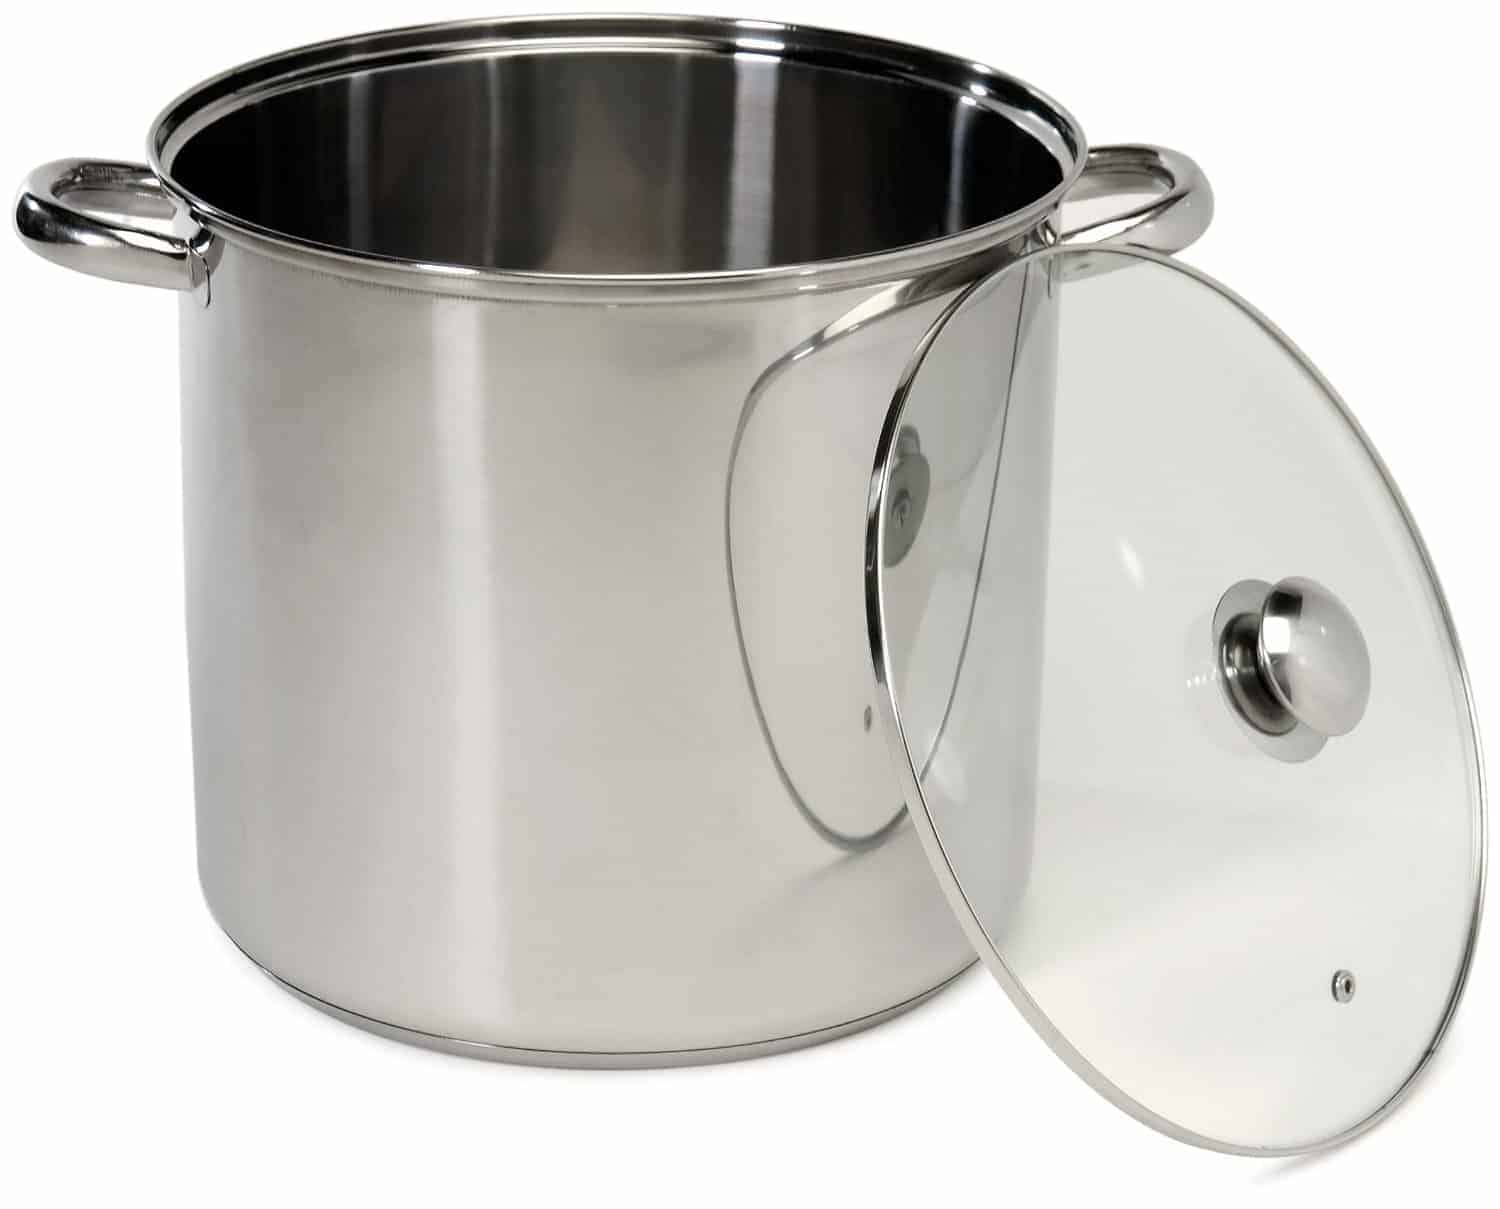 stockpot Essential Cookware You Need for the Holidays